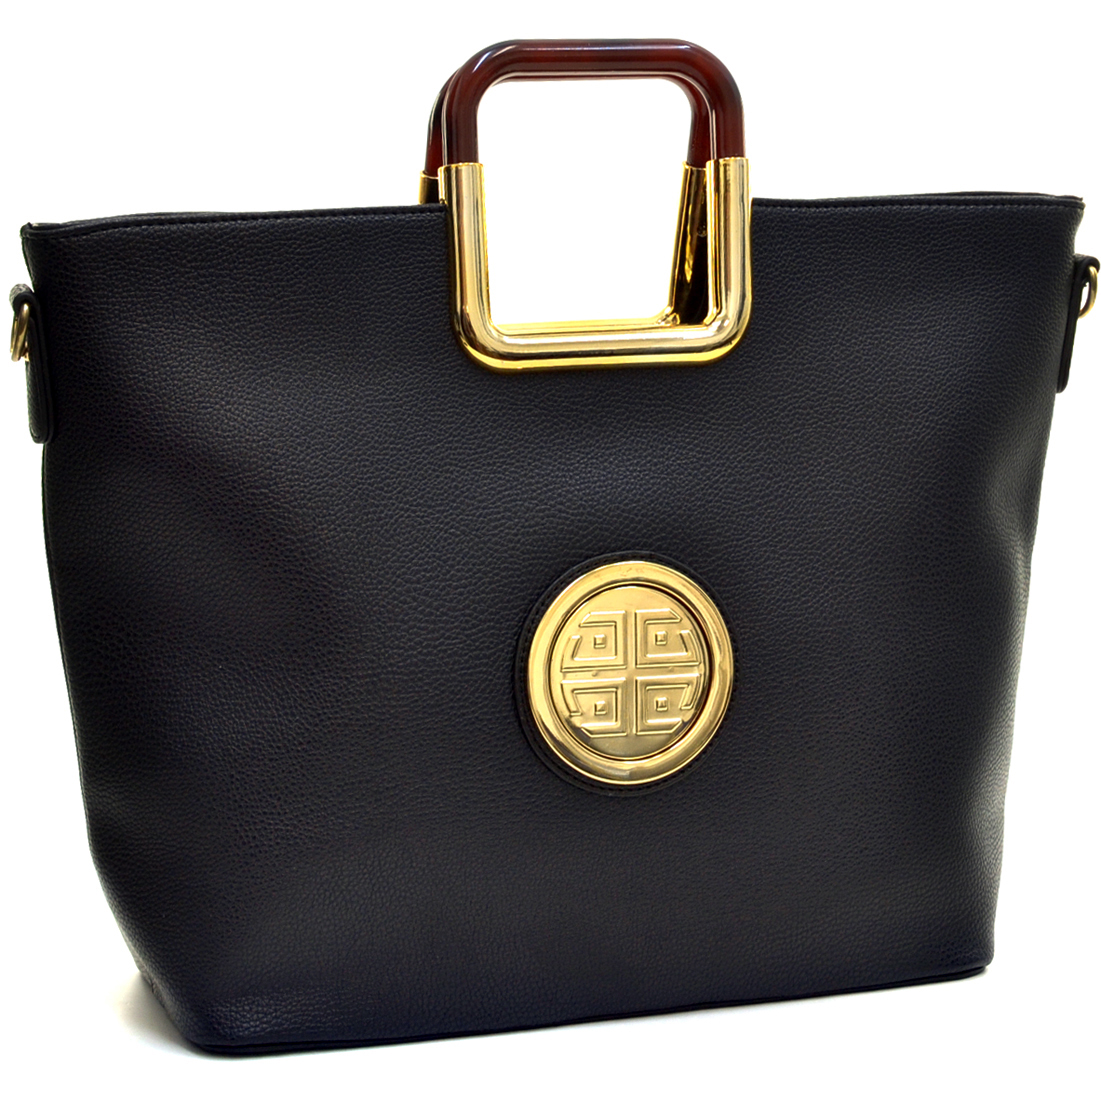 Dasein® Flat Bottom Square Handle Emblem Tote w/Removable Shoulder Strap